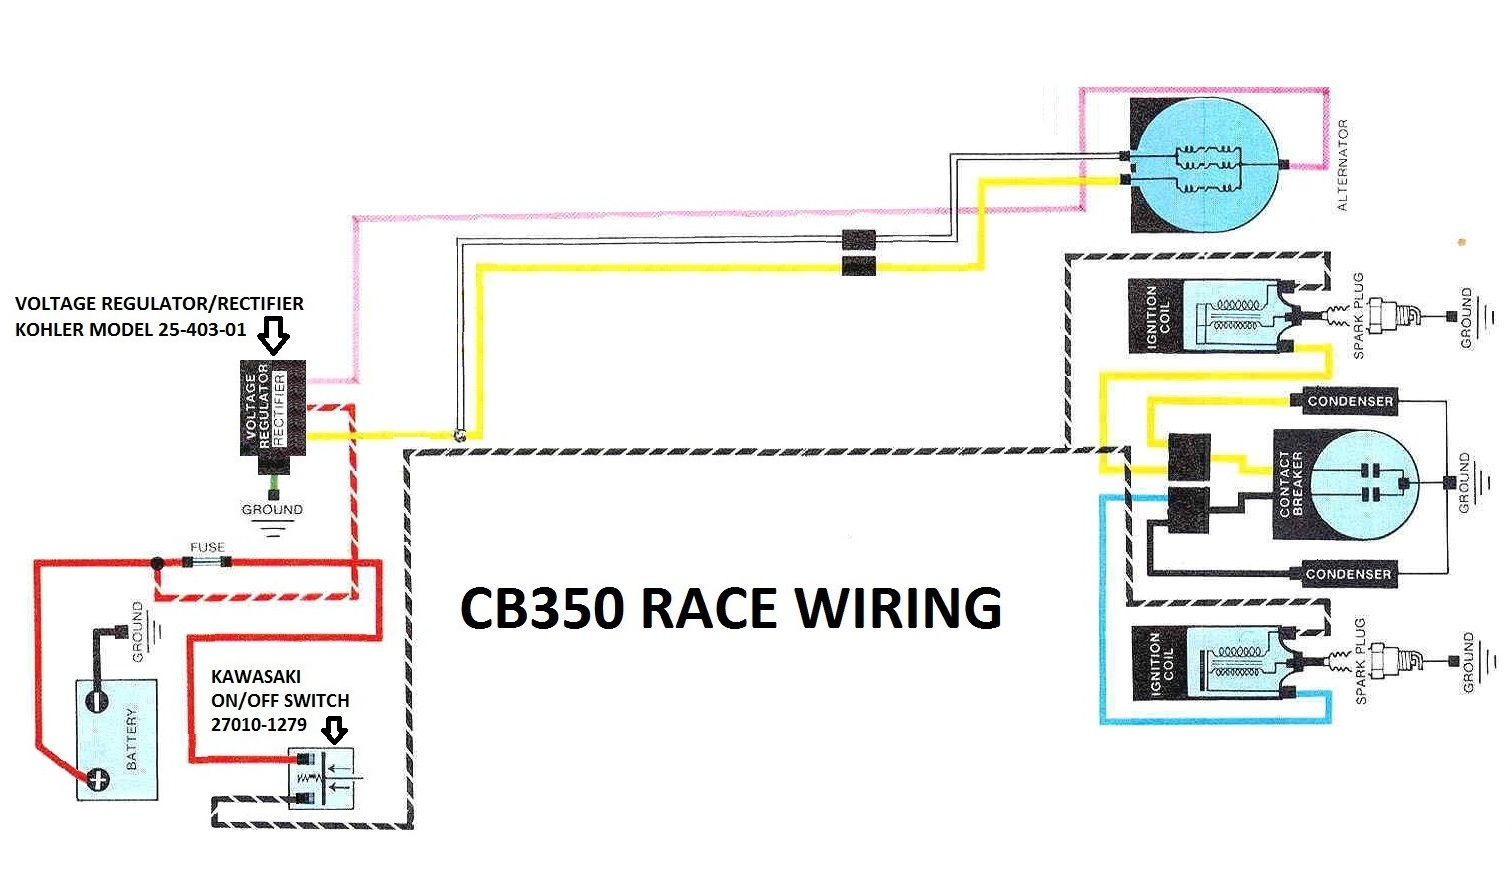 cb350 race wiring a question about voltage regulator wiring cb350 race wiring a question about voltage regulator wiring cb350 race wiring